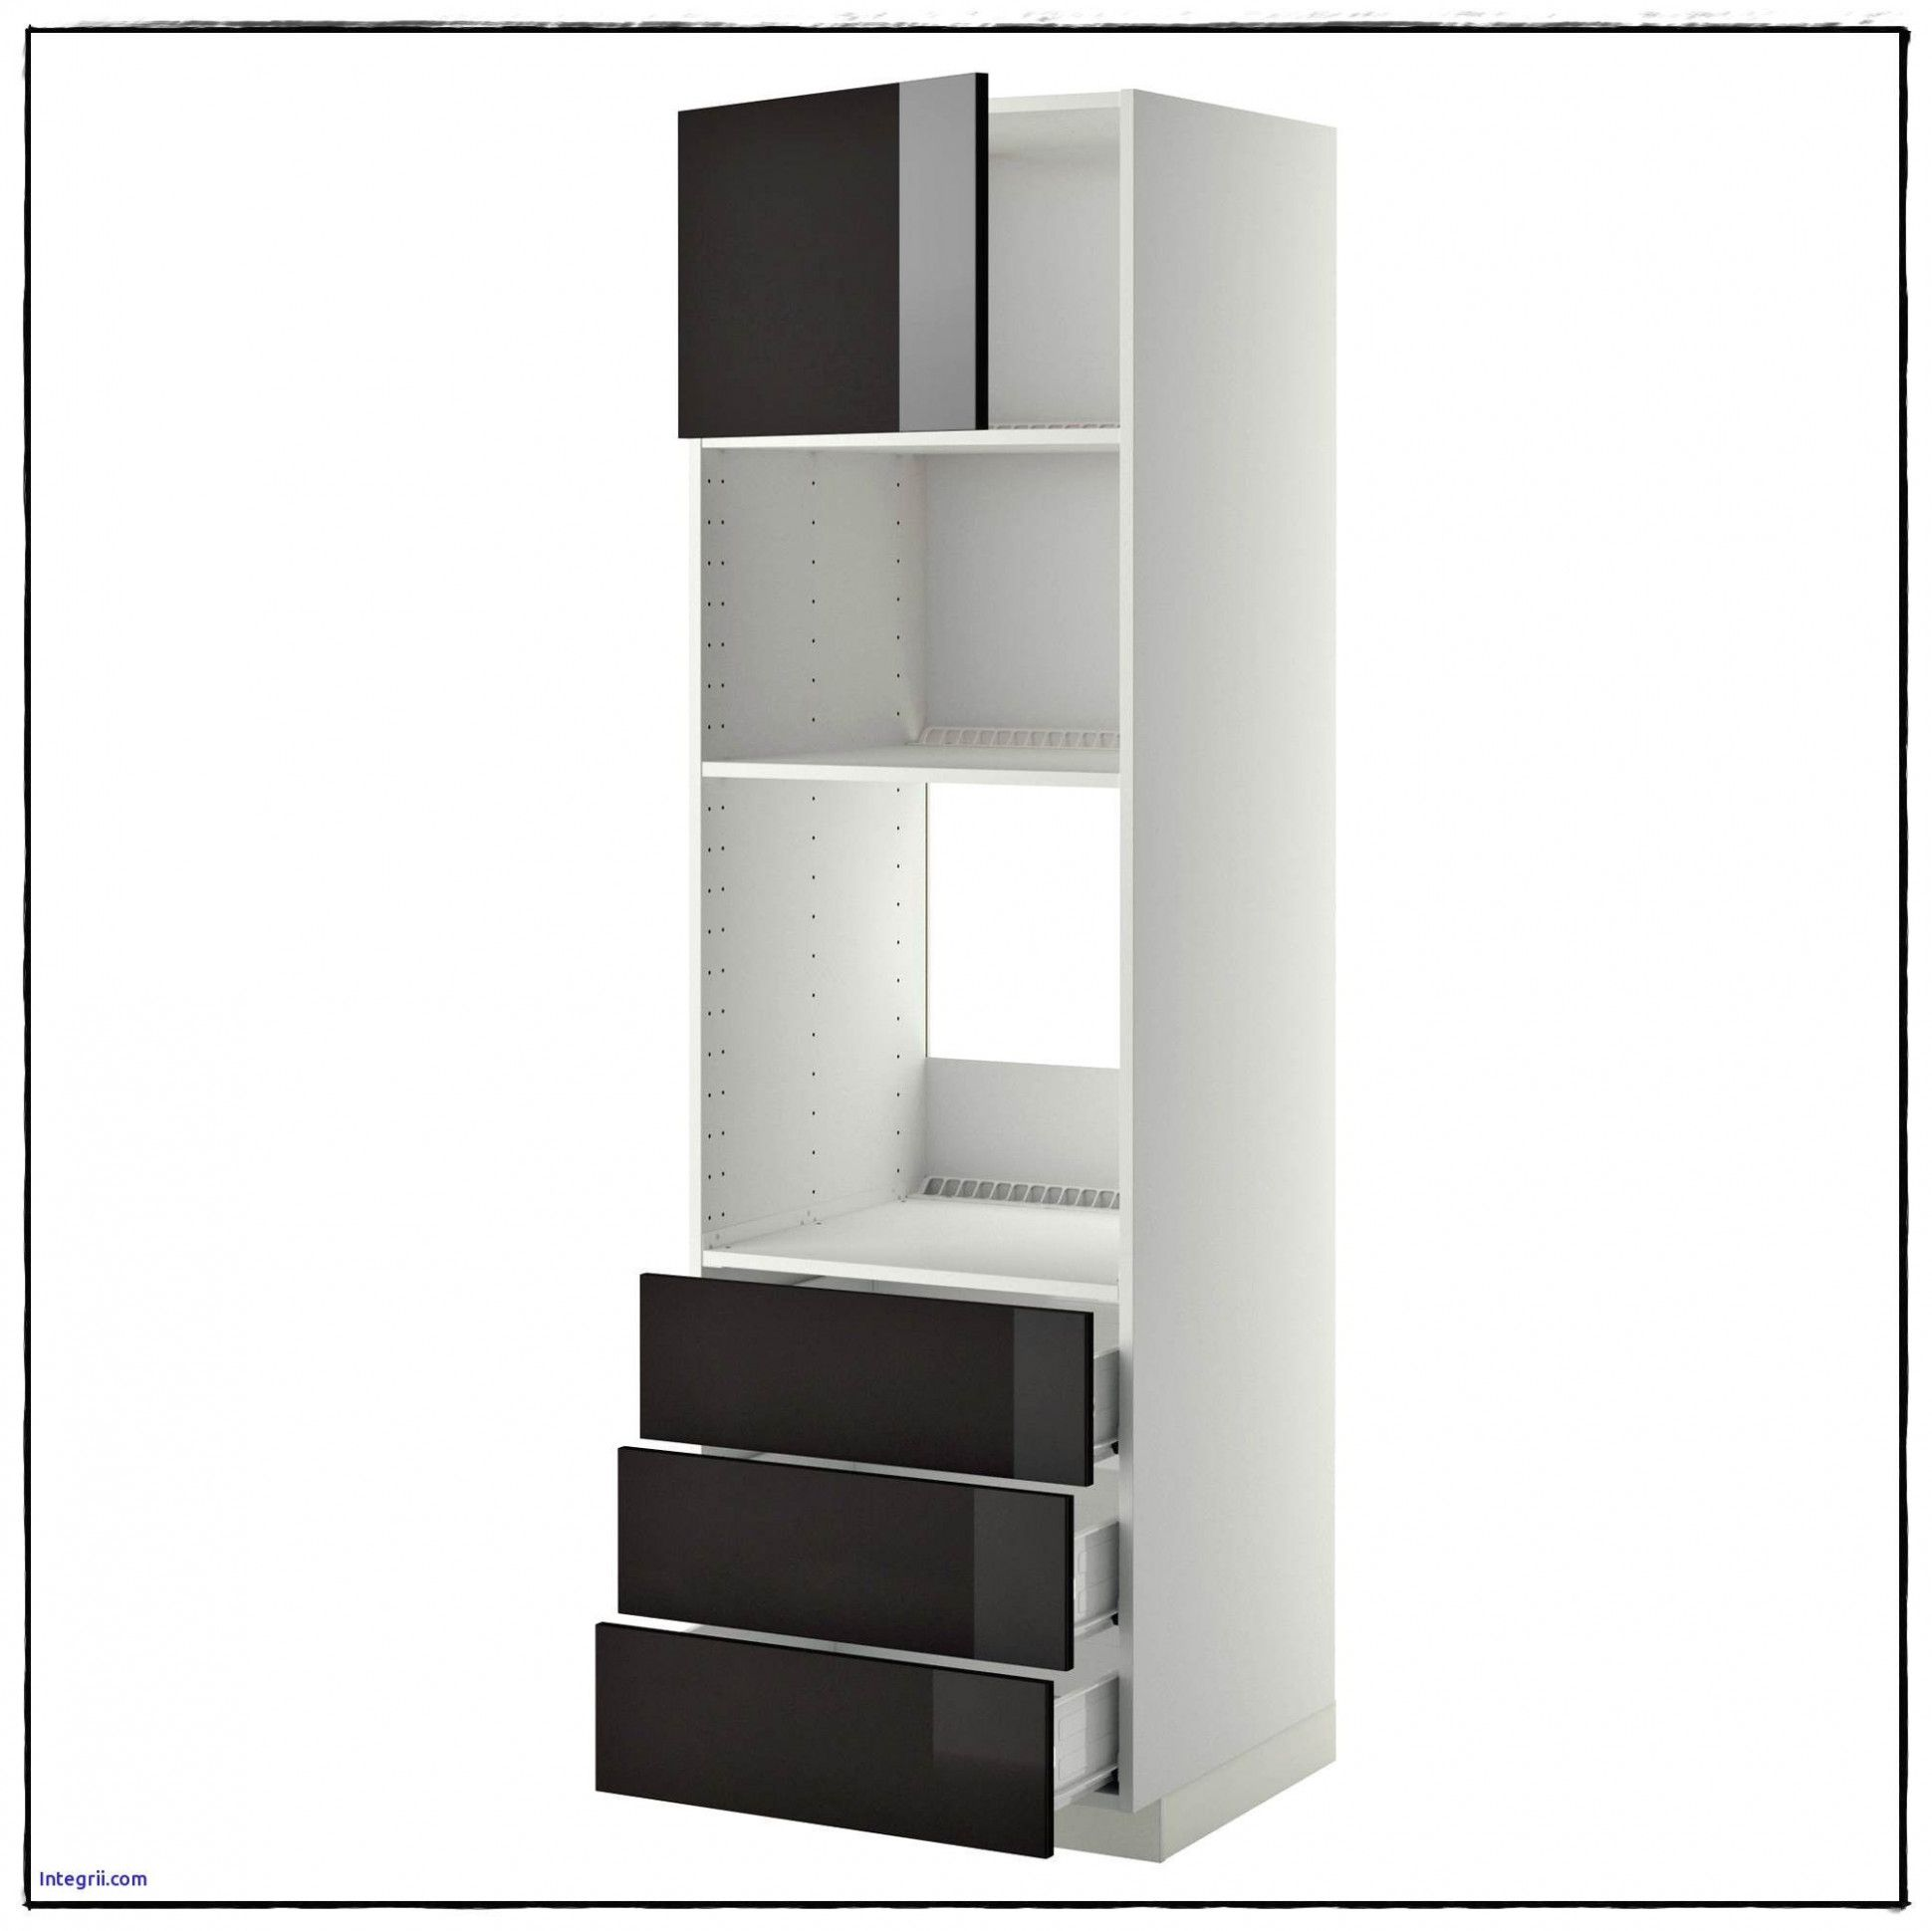 10 Nouveau Design Armoire 10 Portes Conforama In 2020 Tall Cabinet Storage Armoire Repurpose Black Dressing Tables